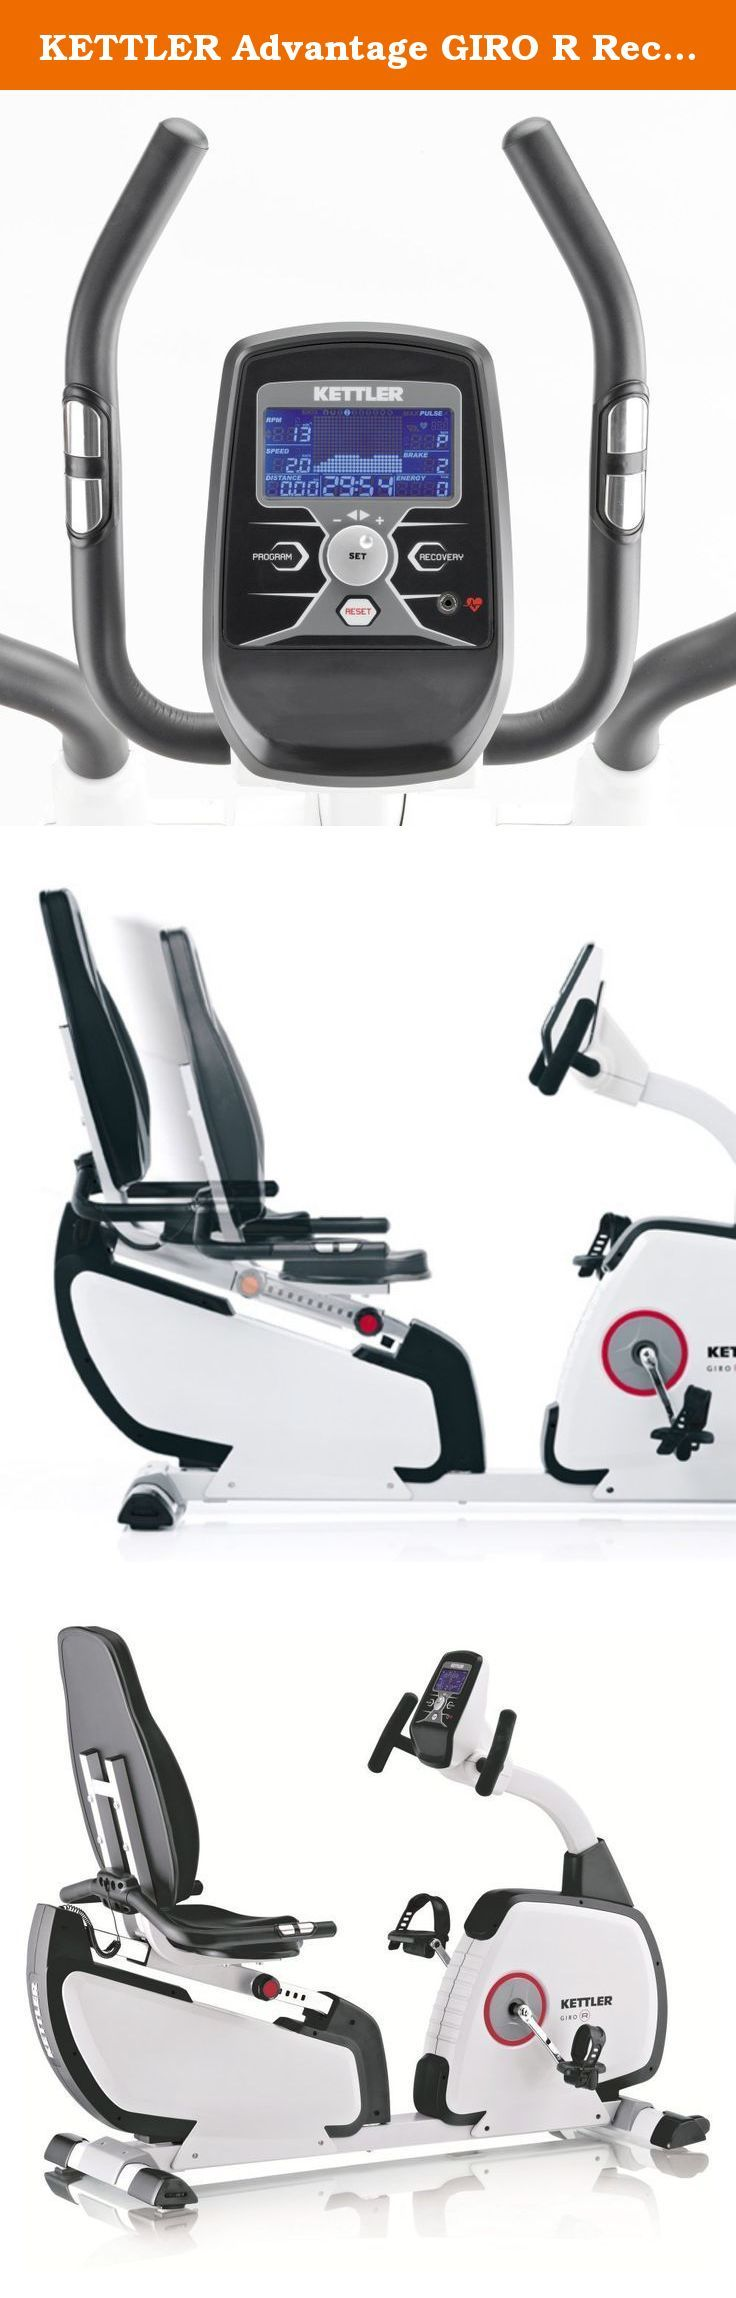 KETTLER Advantage GIRO R Recumbent Exercise Bike. Informative LCD display for instant feedback Adjustable heart rate control programs Quick start lets you pedal to activate trainer 15-lb. flywheel Poly-V drive belt system; smooth, quiet operation Built-in casters; easy maintenance and storage About Kettler Products This item is manufactured by Kettler. Throughout the world, Kettler is a leading brand in leisure furniture, sports and fitness equipment, table tennis tables, bicycles, and...